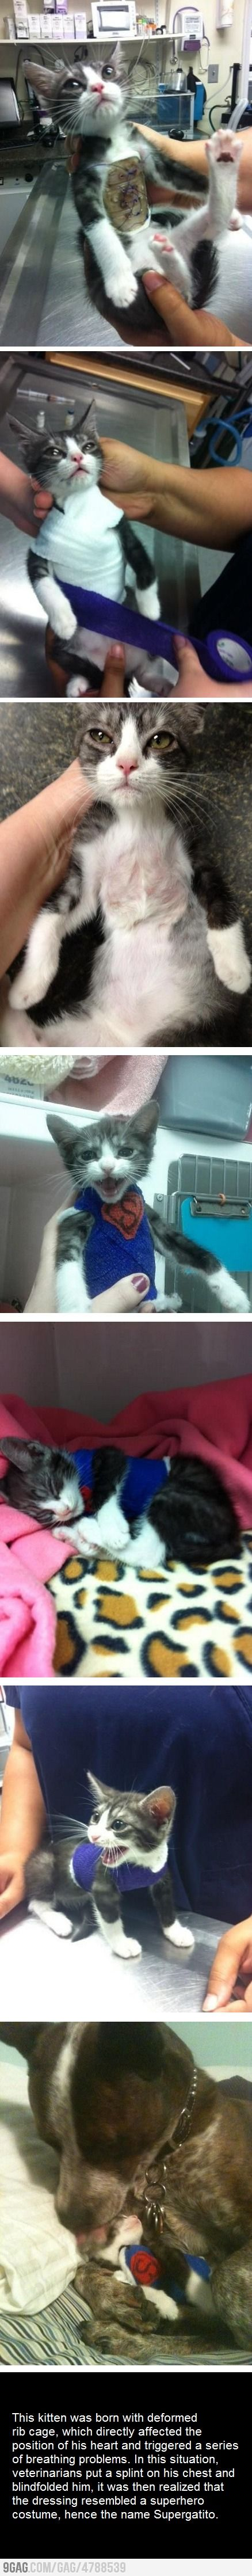 Awww little sweet baby!!: Cats, Super Cat, It S Supergatito, Poor Kitty, Dog, Animal